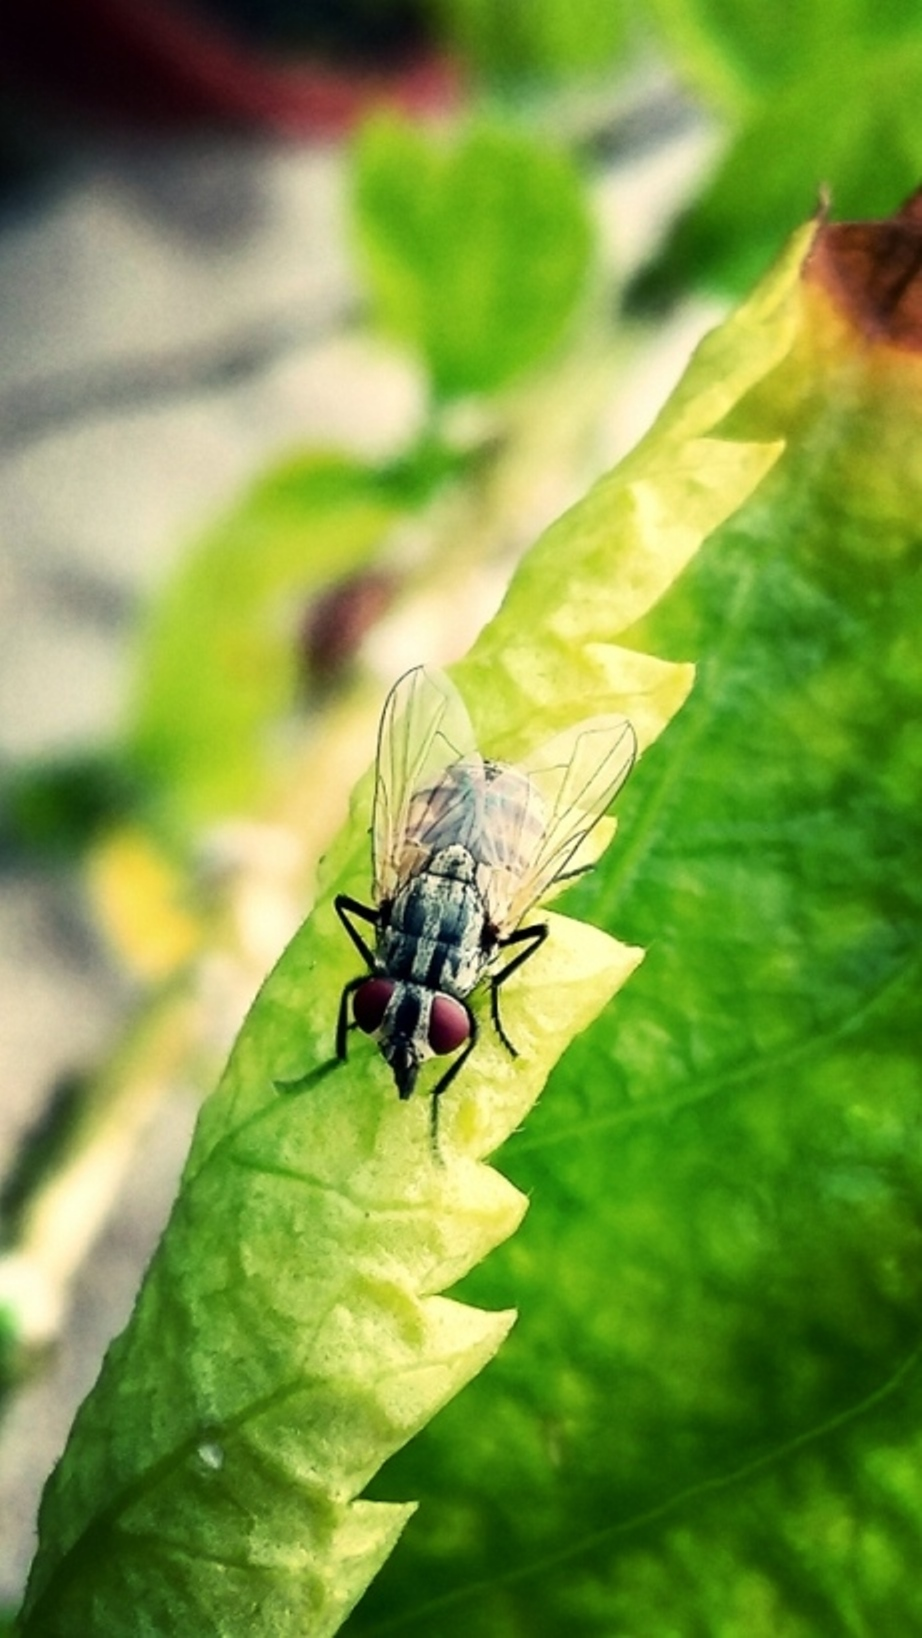 A fly resting on a leaf surface